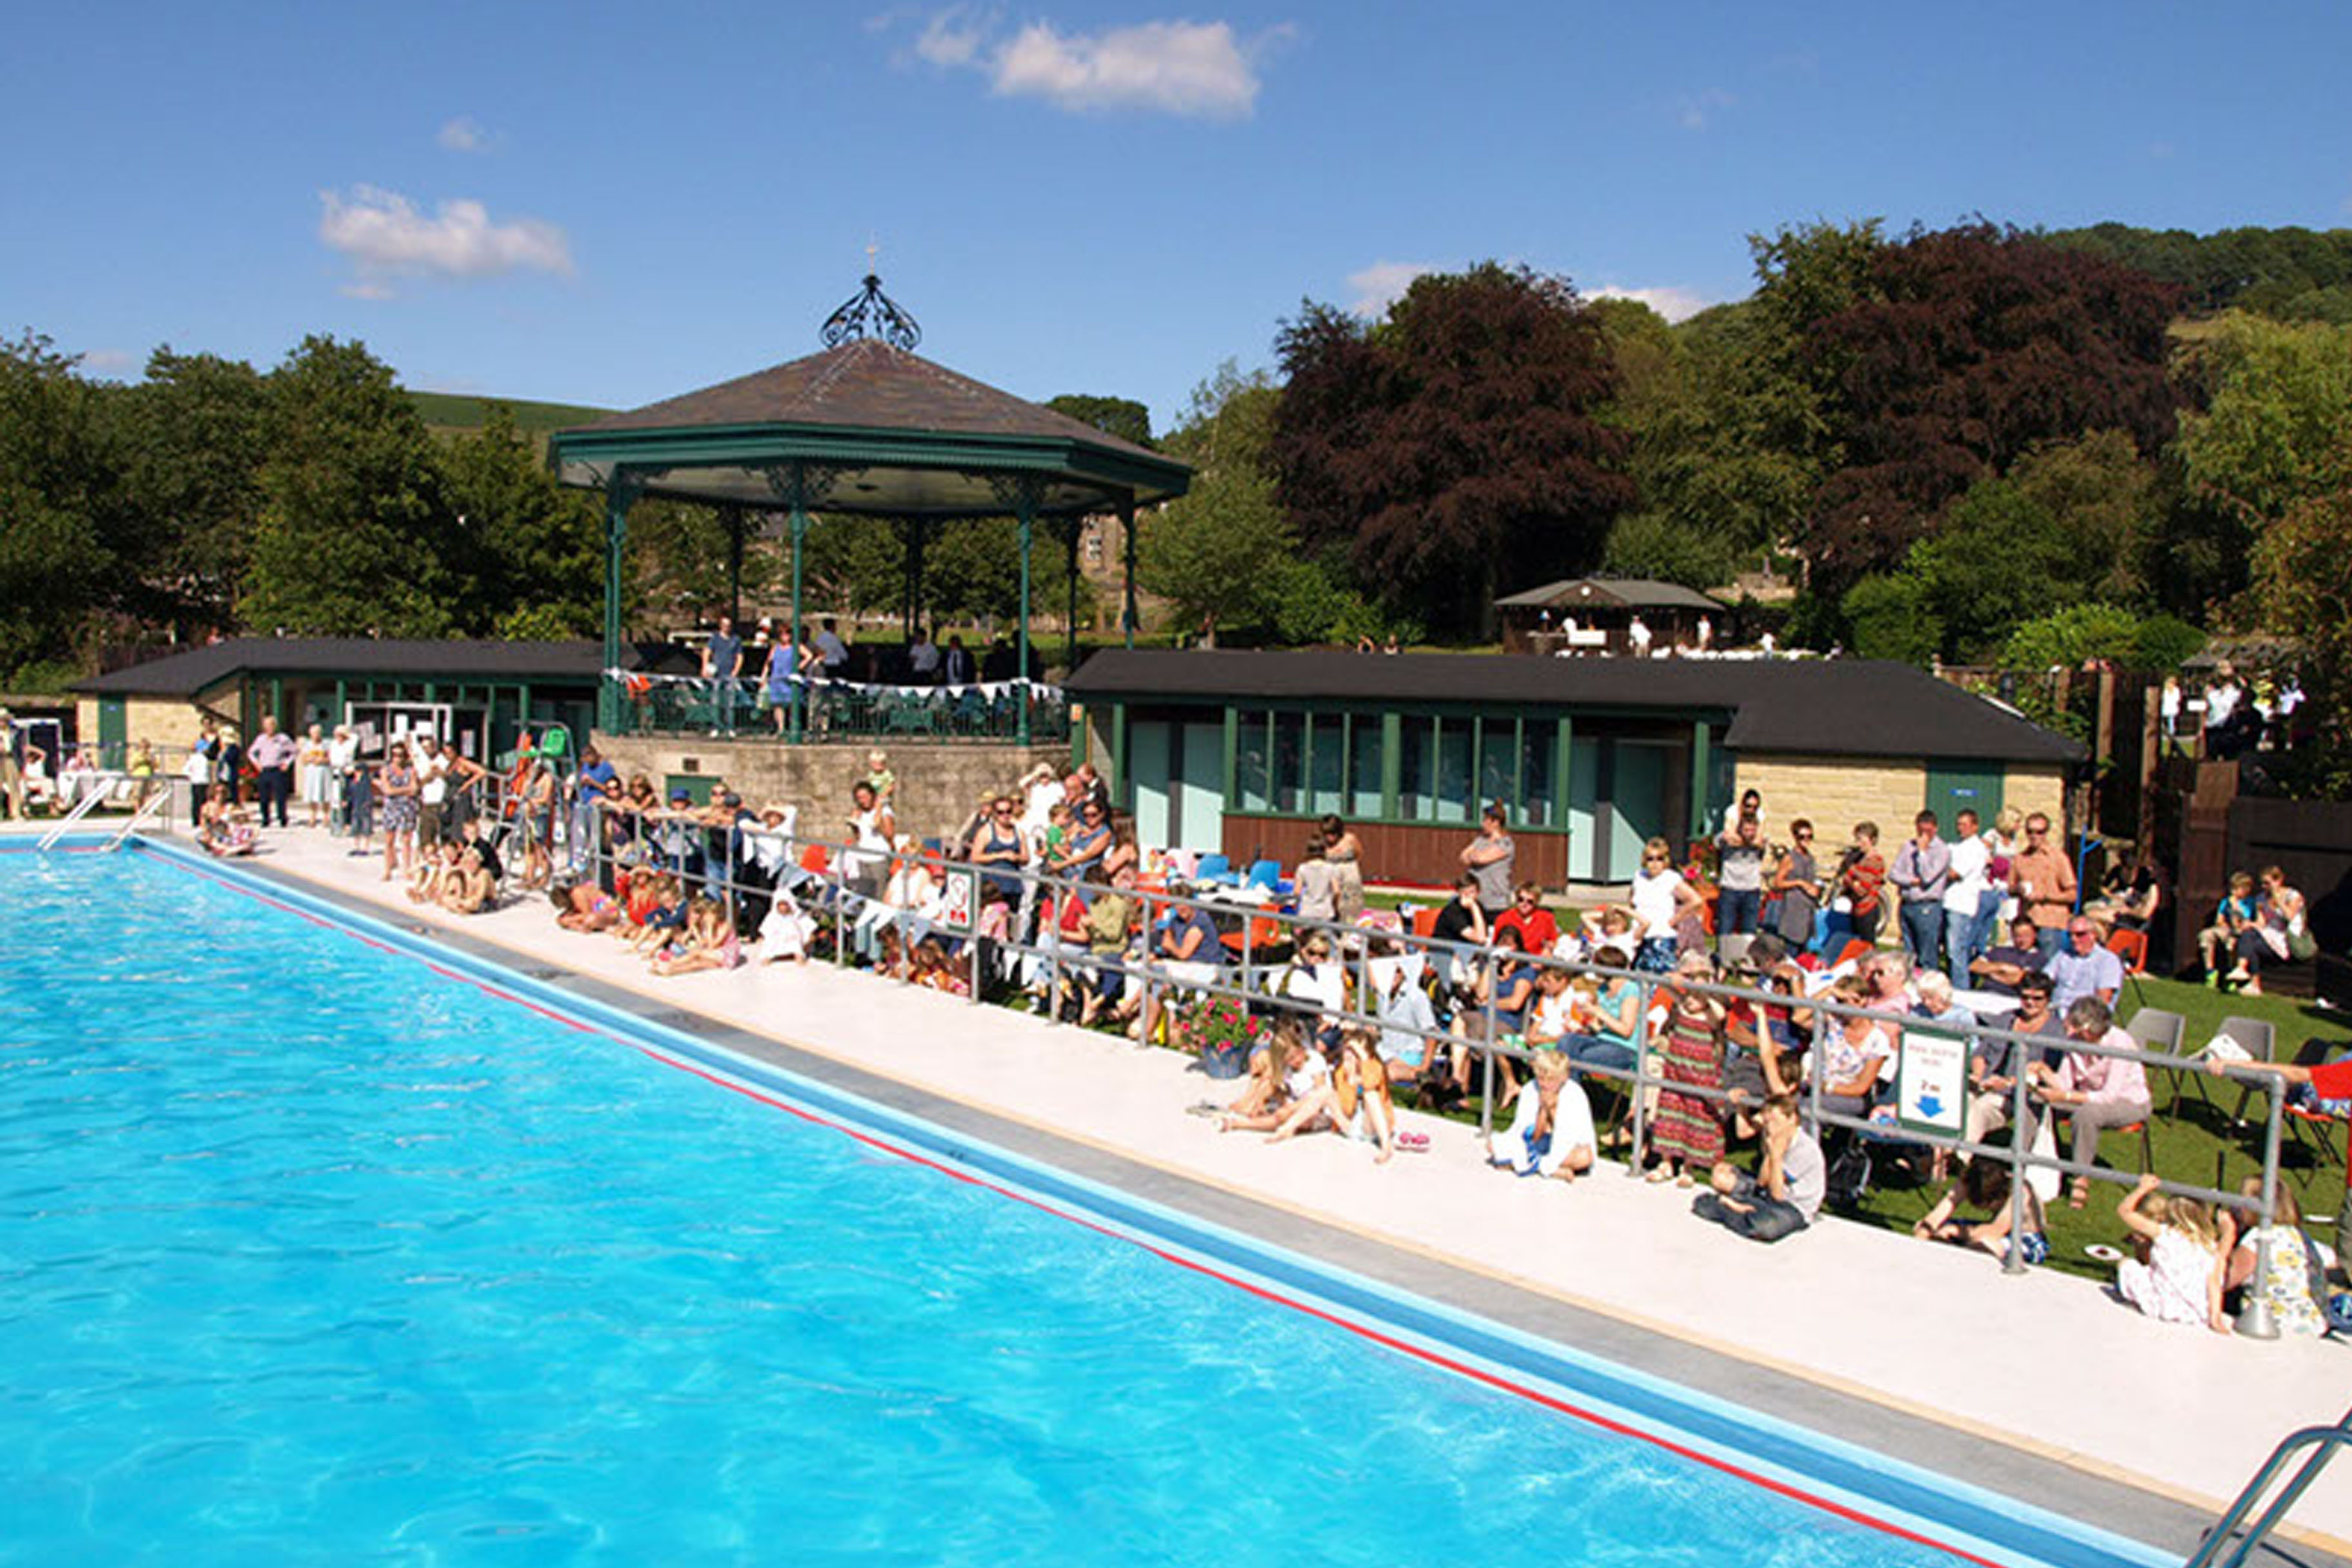 Hathersage open air swimming pool and little john s - Hathersage open air swimming pool ...